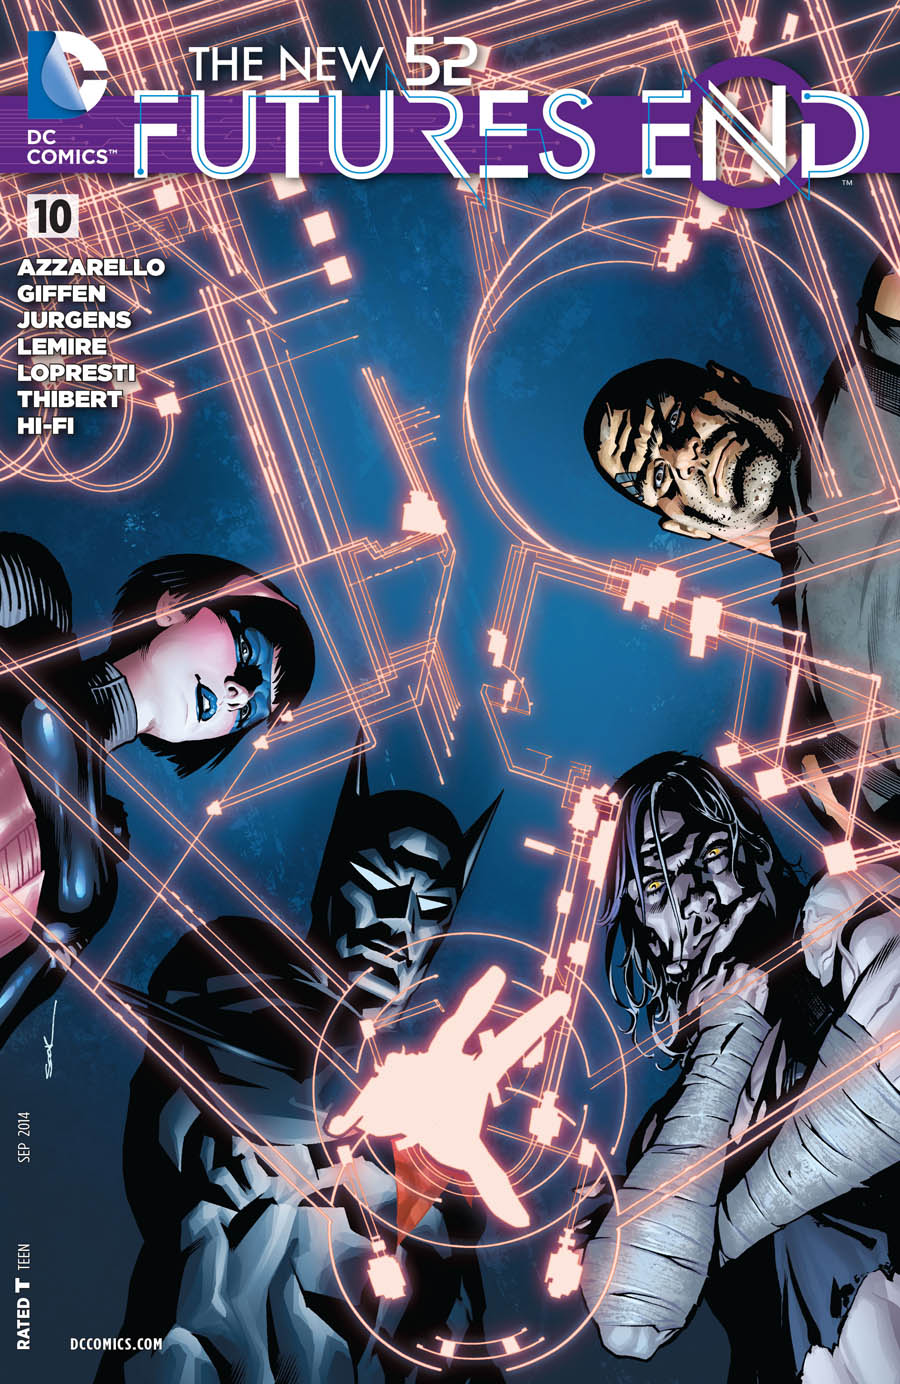 The New 52: Futures End Vol.1 #10